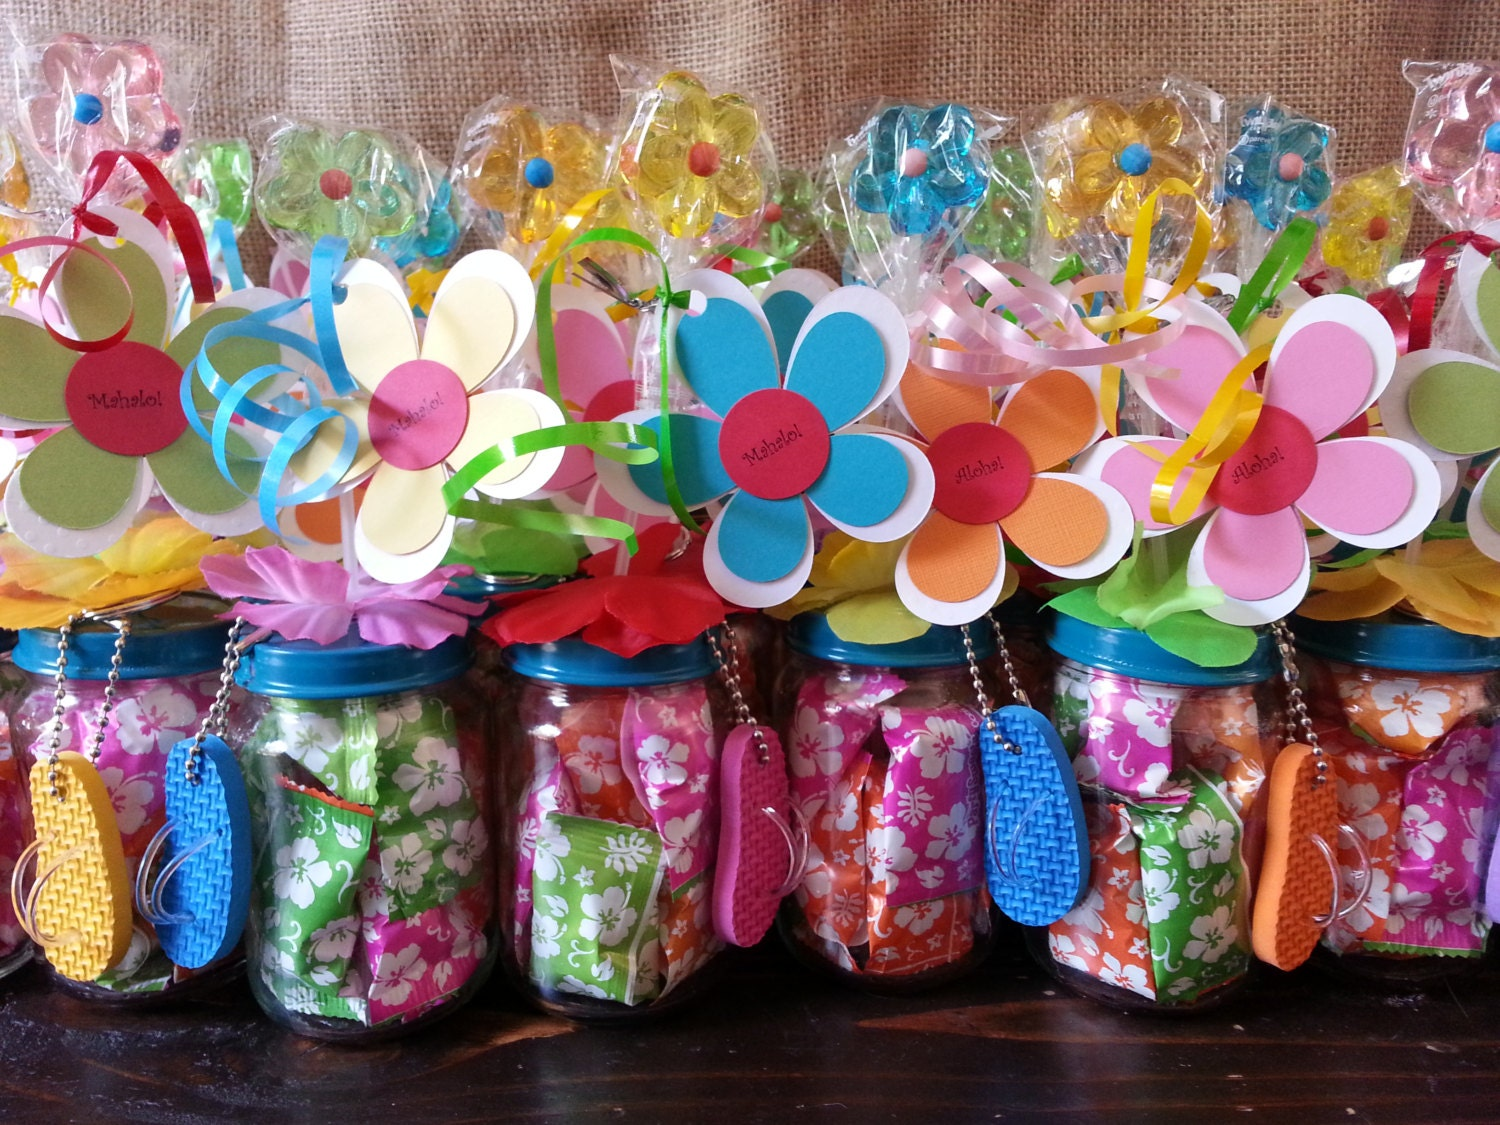 Wedding Gift Ideas For Kids: Hawaiian Luau Party Favors Baby Food Jar Party Favors